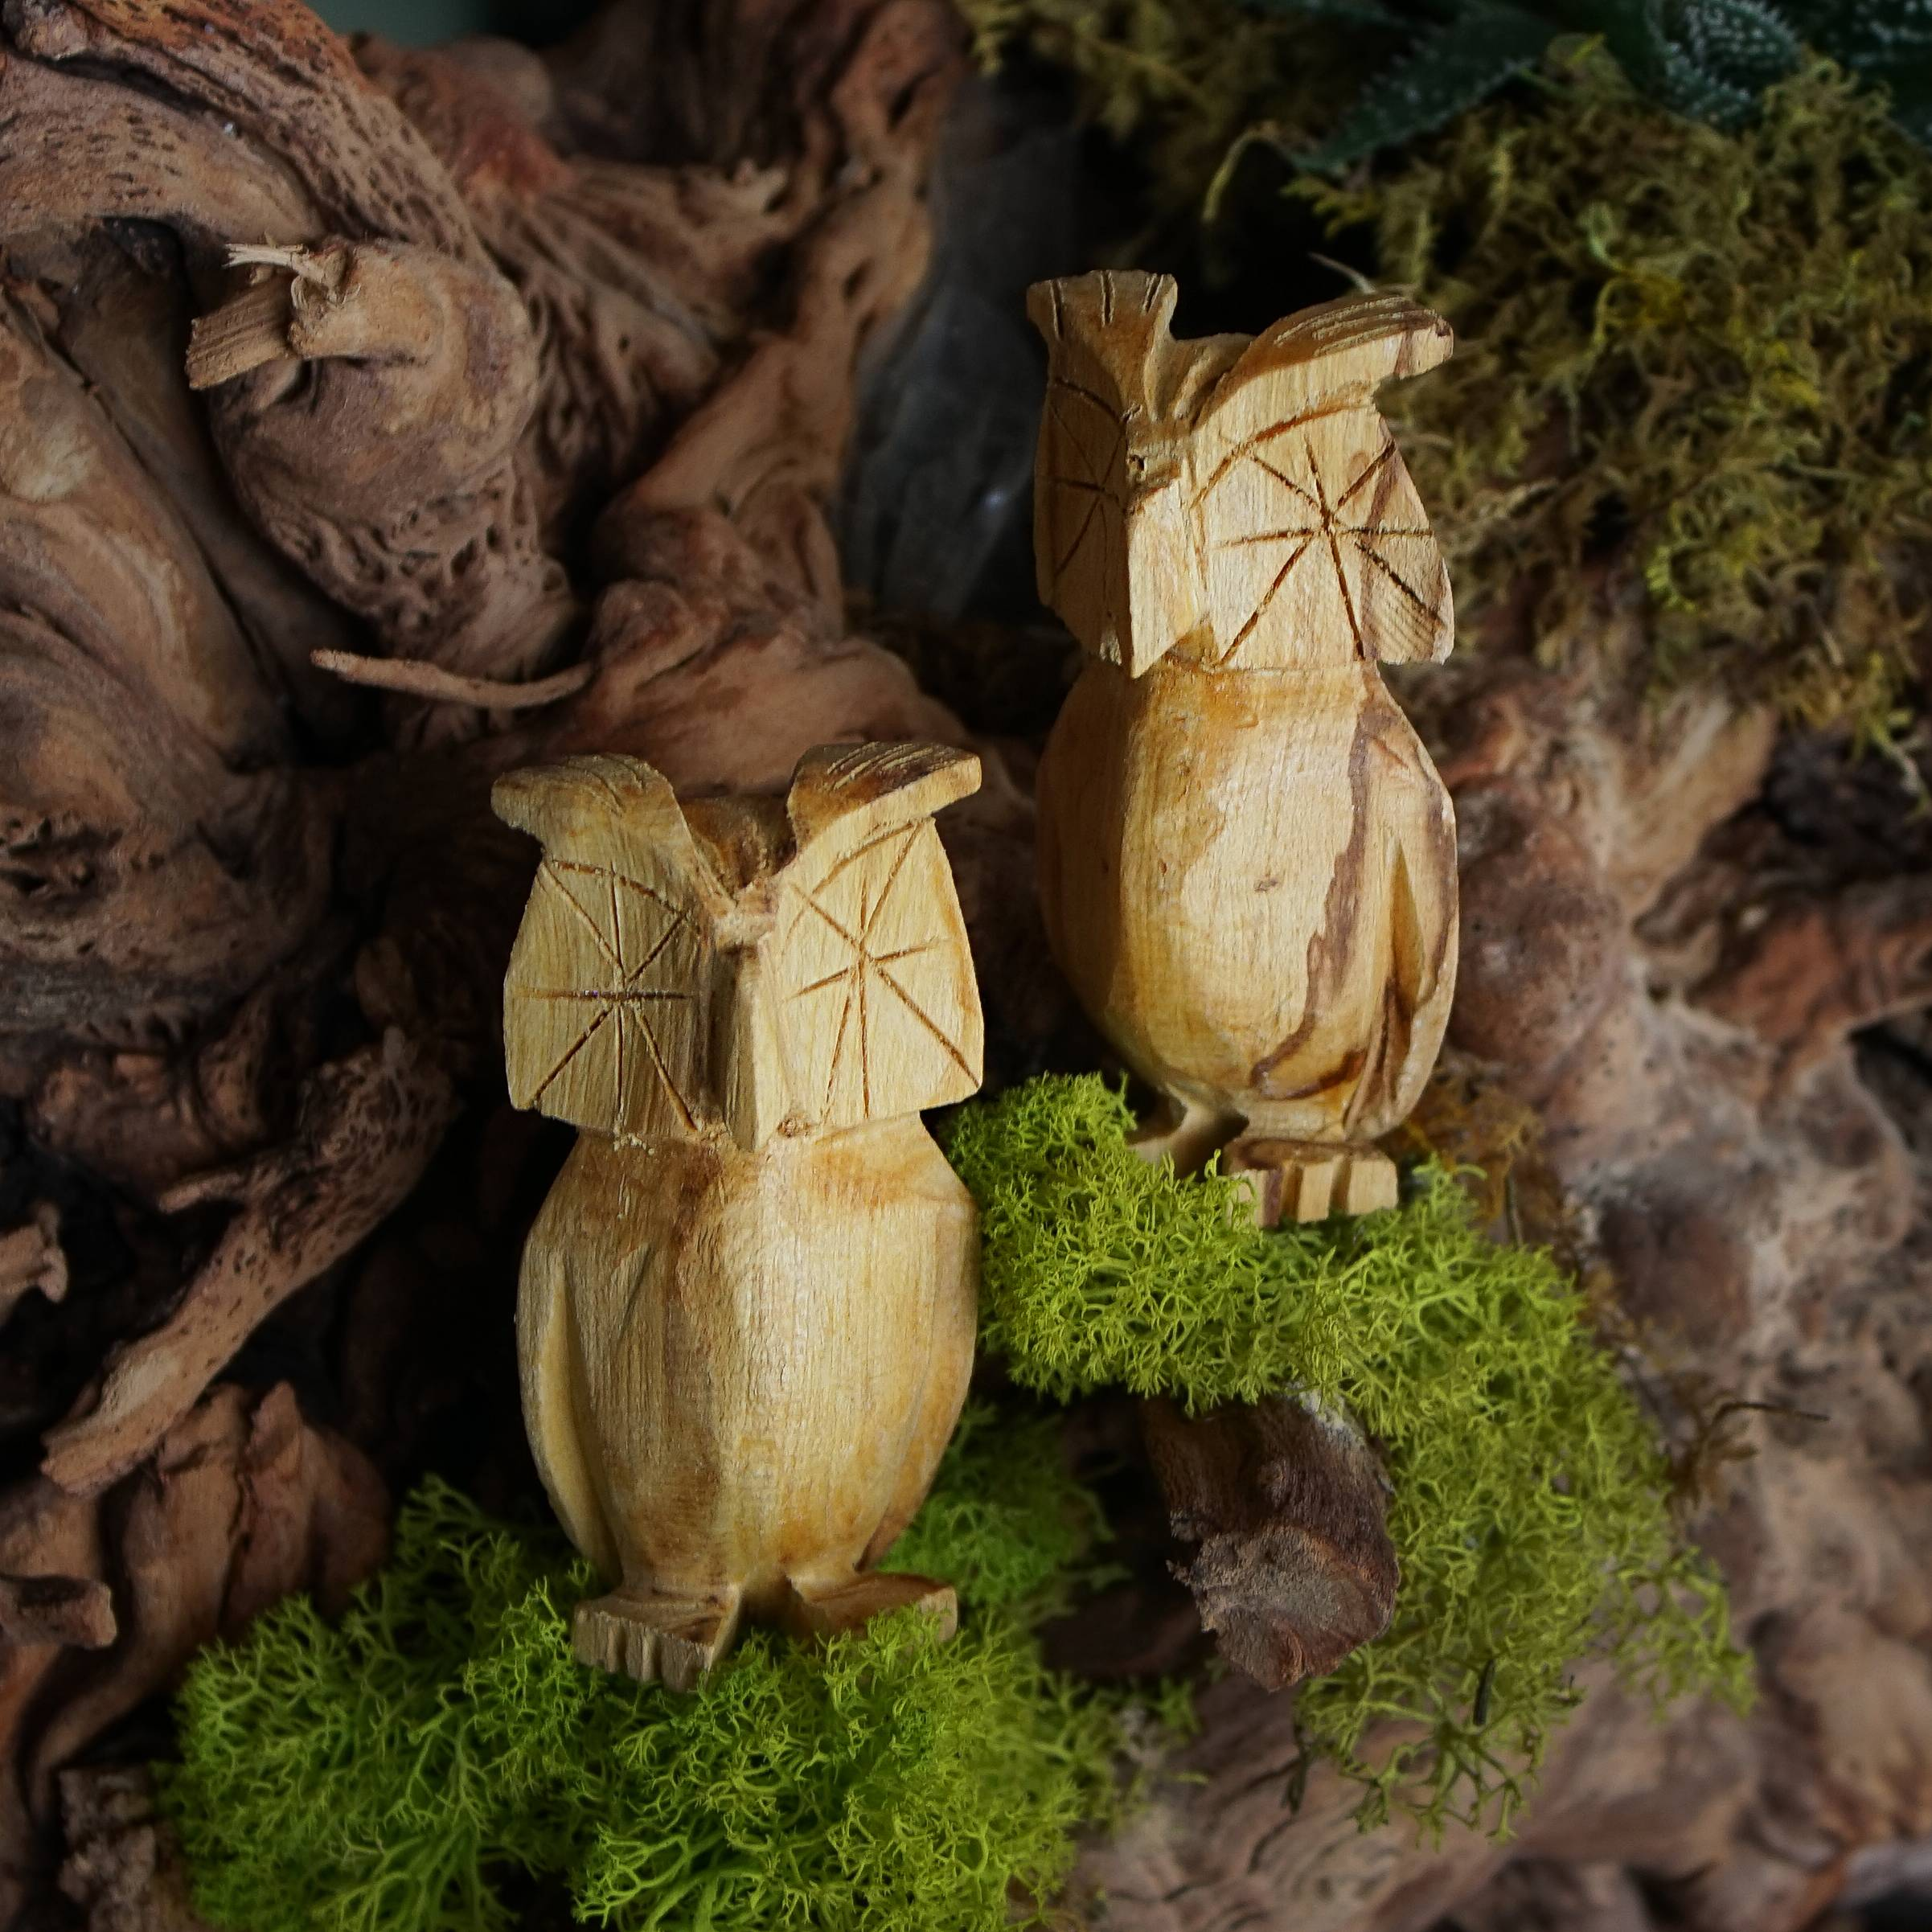 Palo santo owls for healing and heightened intuition